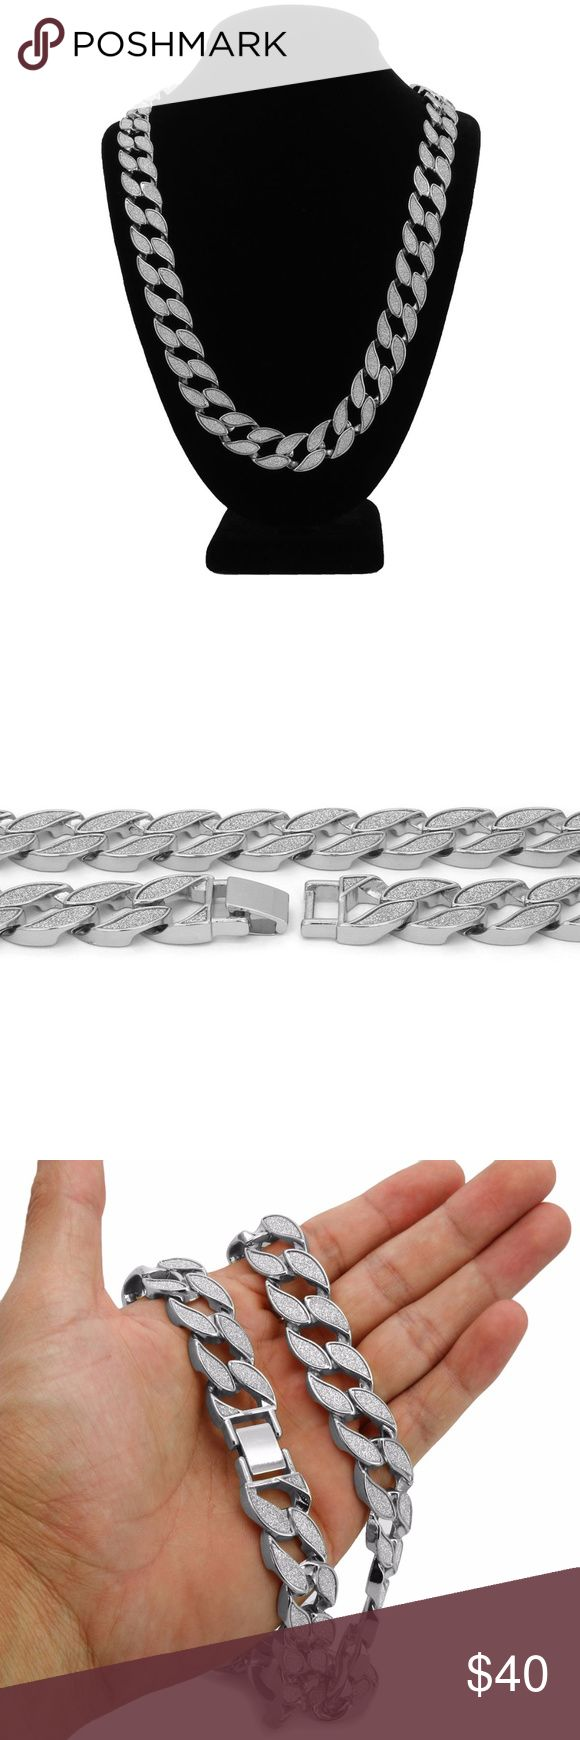 "Mens Silver Finish STARDUST SANDSTONE Hip Hop Miam Item: Stardust Sandstone Cuban Chain Necklace  Length: 30"" Inches  Width: 18mm  Type: Cuban Curb  Luxury Clasp Accessories Jewelry"